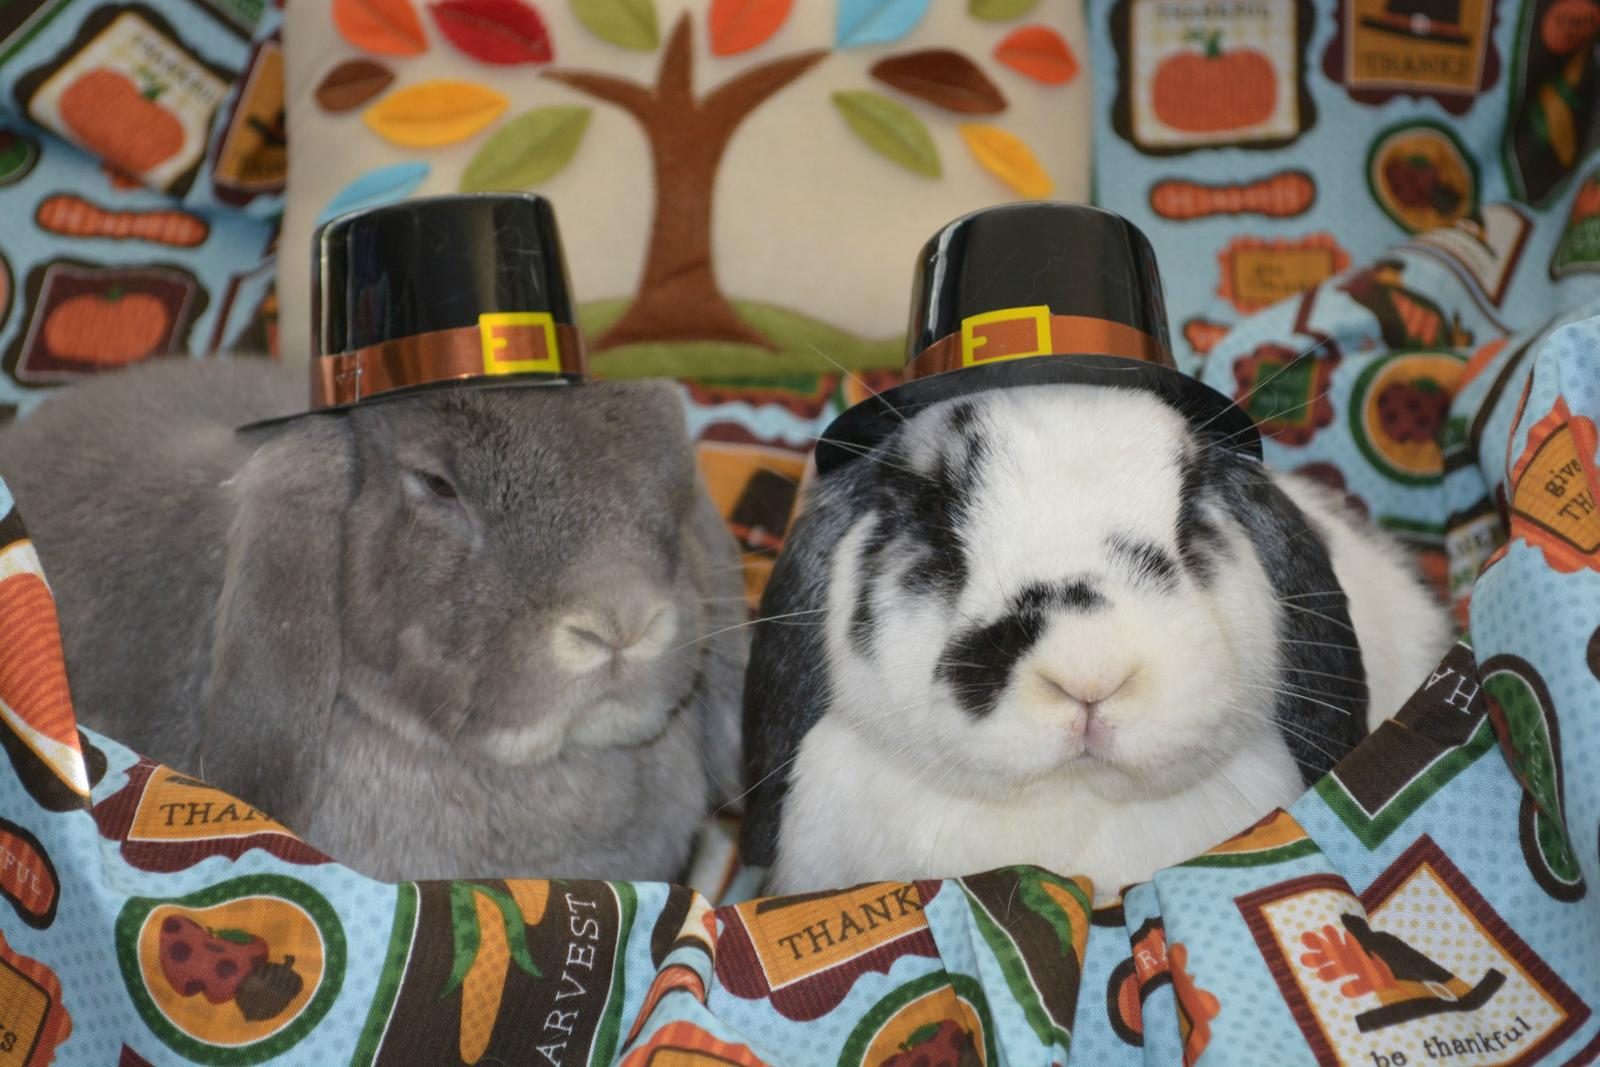 More Bunnies in Thanksgiving Hats!